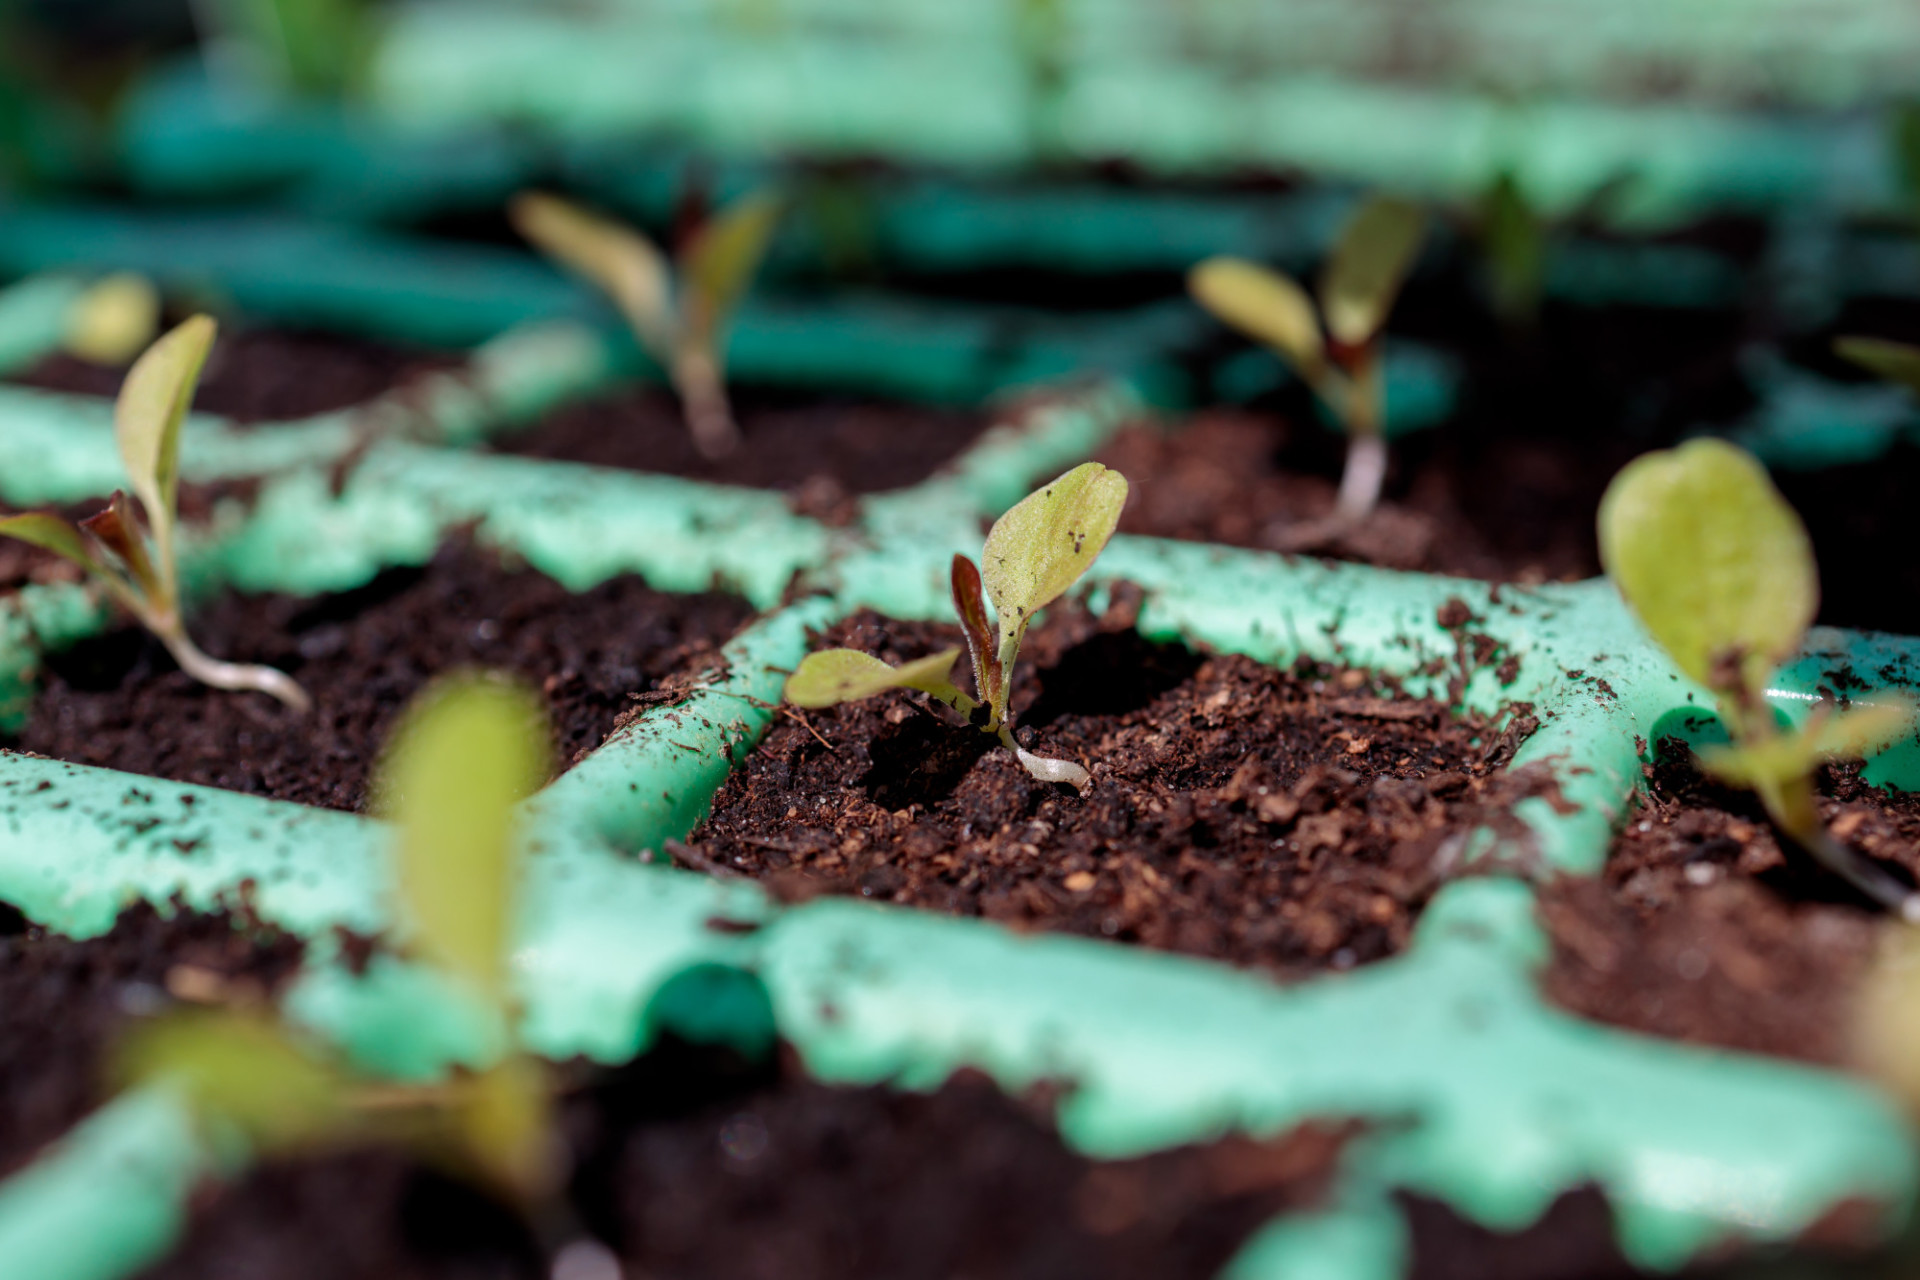 Grow seedlings